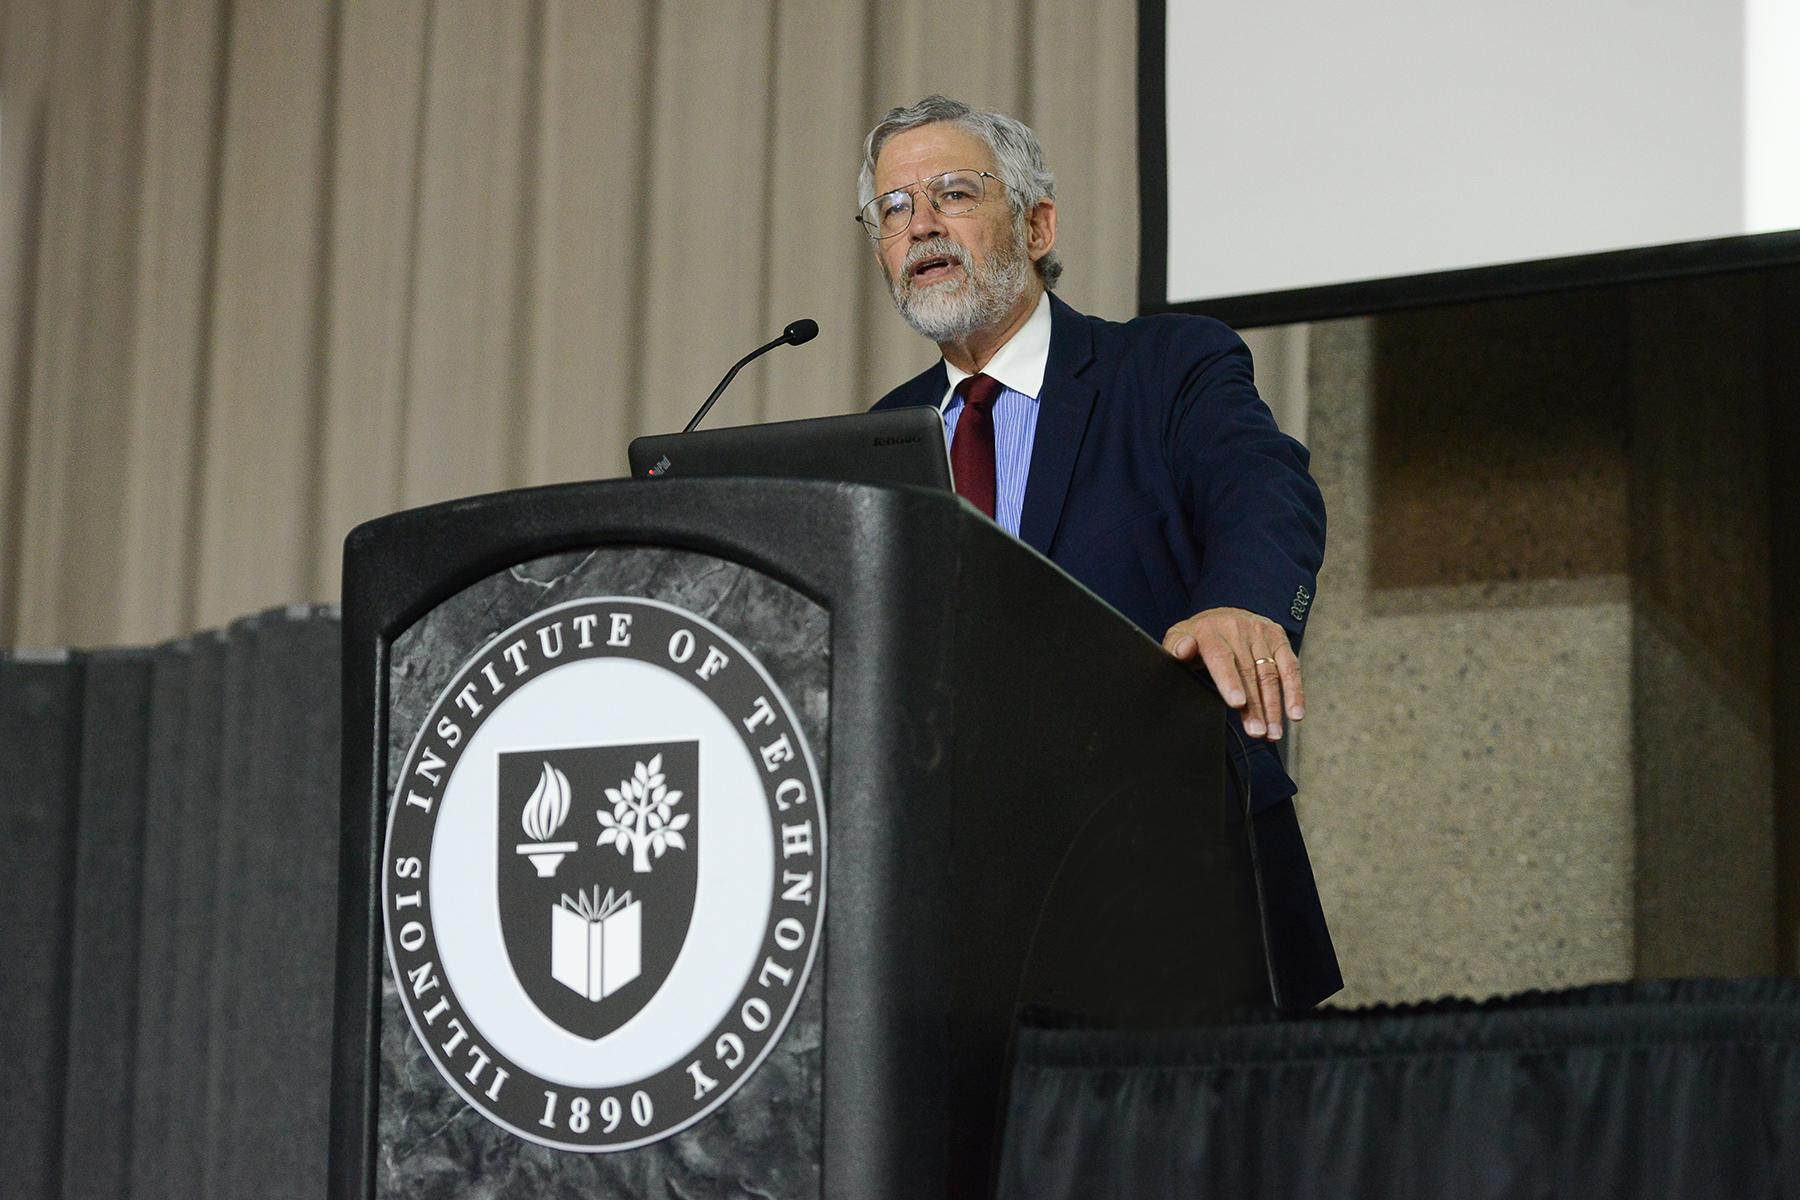 John P. Holdren, President Barack Obama's science and technology adviser from 2009-2017, gives a lecture on climate change Oct. 19 at the Illinois Institute of Technology. (Bonnie Robinson / Illinois Institute of Technology)